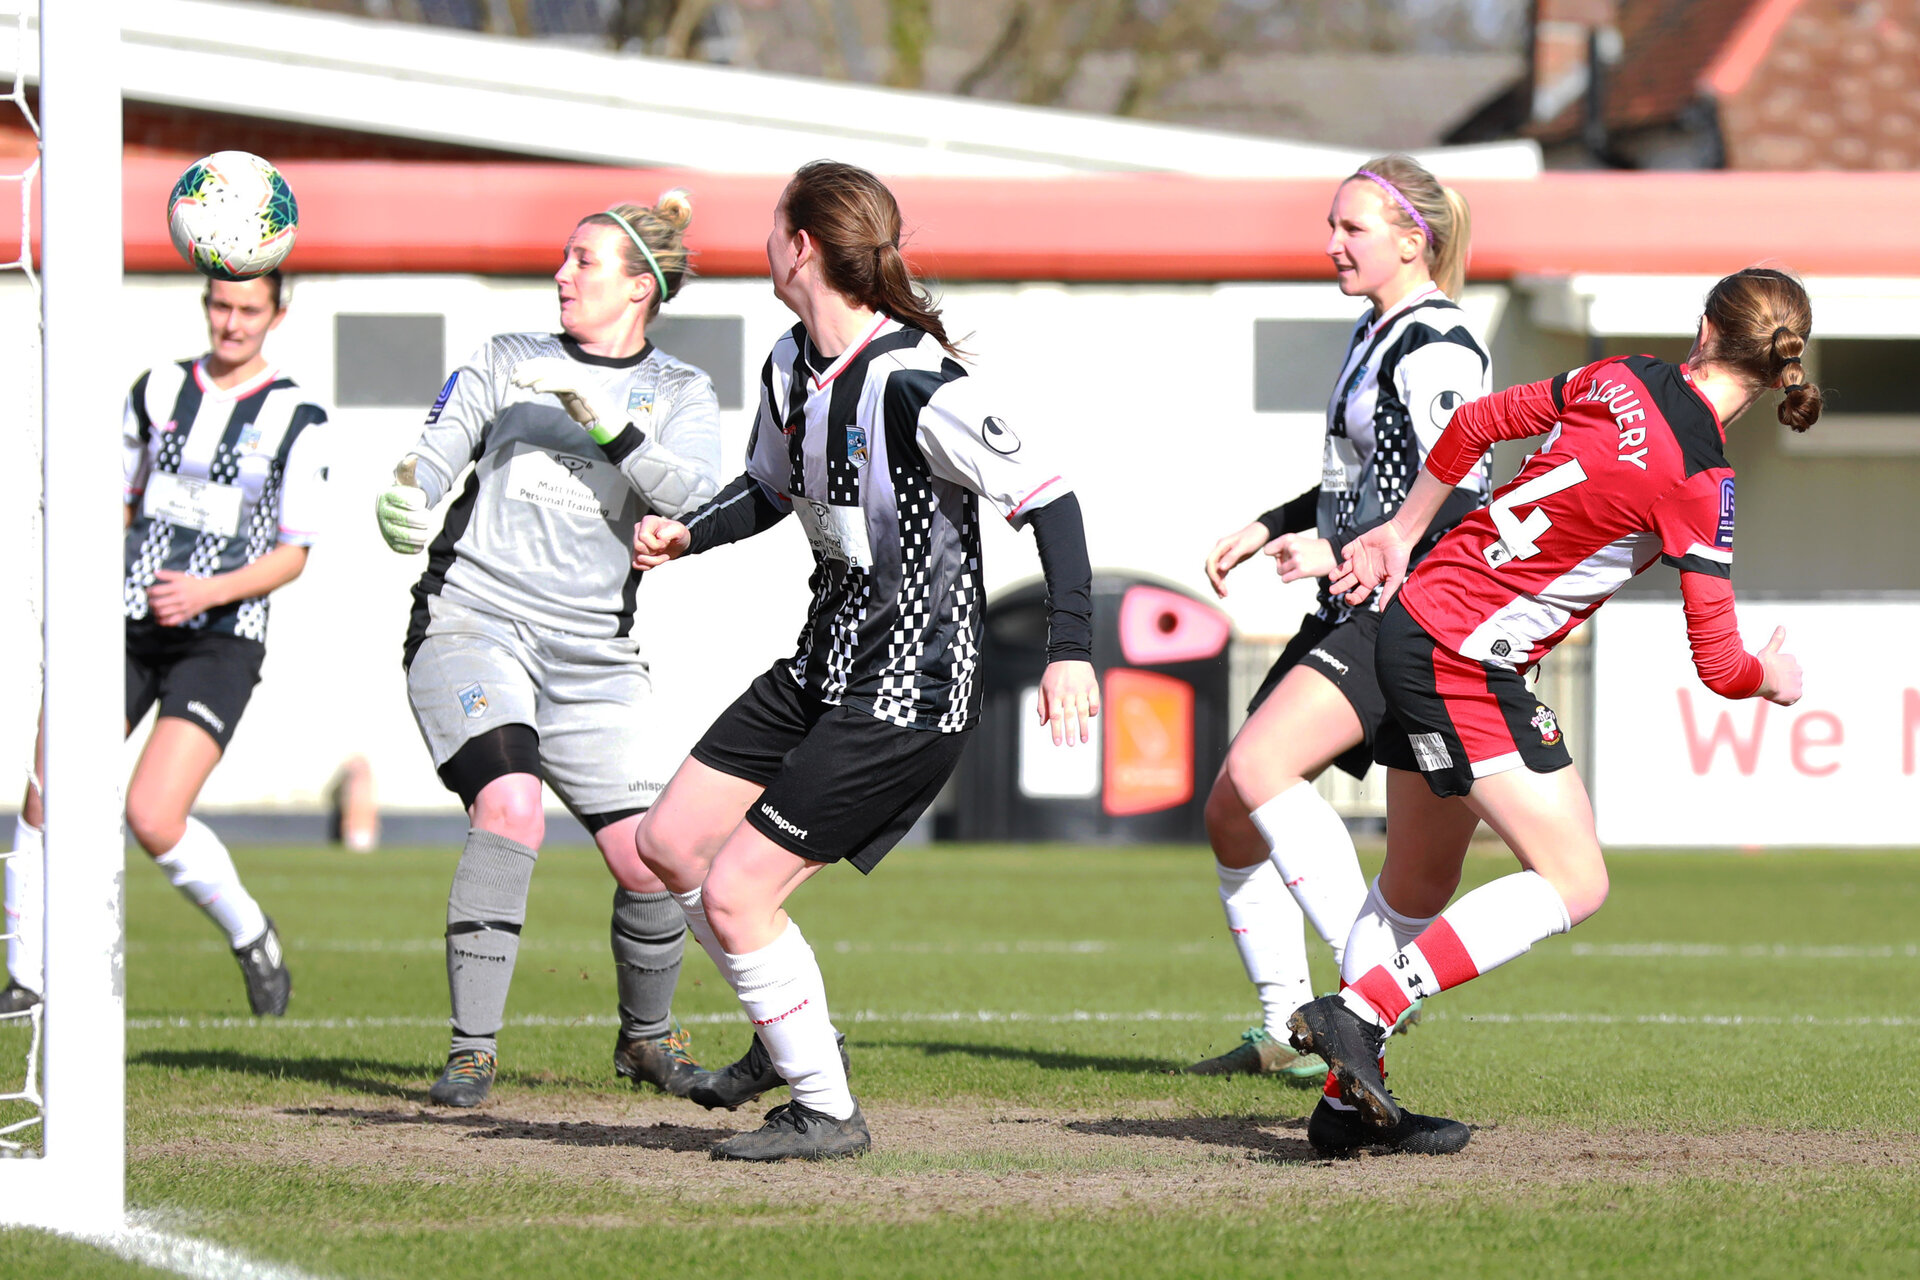 SOUTHAMPTON, ENGLAND - March 1: Shannon Albuery of Southampton FC Womens scores her sideÕs first goal during the FA WomenÕs National League match between Southampton Women and Maidenhead United at Staplewood Campus on March 1 2020, Exeter, England. (Photo by Tom Mulholland/Southampton FC) SOUTHAMPTON, ENGLAND - March 1: Shannon Albuery of Southampton FC Womens scores her side's first goal during the FA Women's National League match between Southampton Women and Maidenhead United at Staplewood Campus on March 1 2020, Exeter, England. (Photo by Tom Mulholland/Southampton FC)